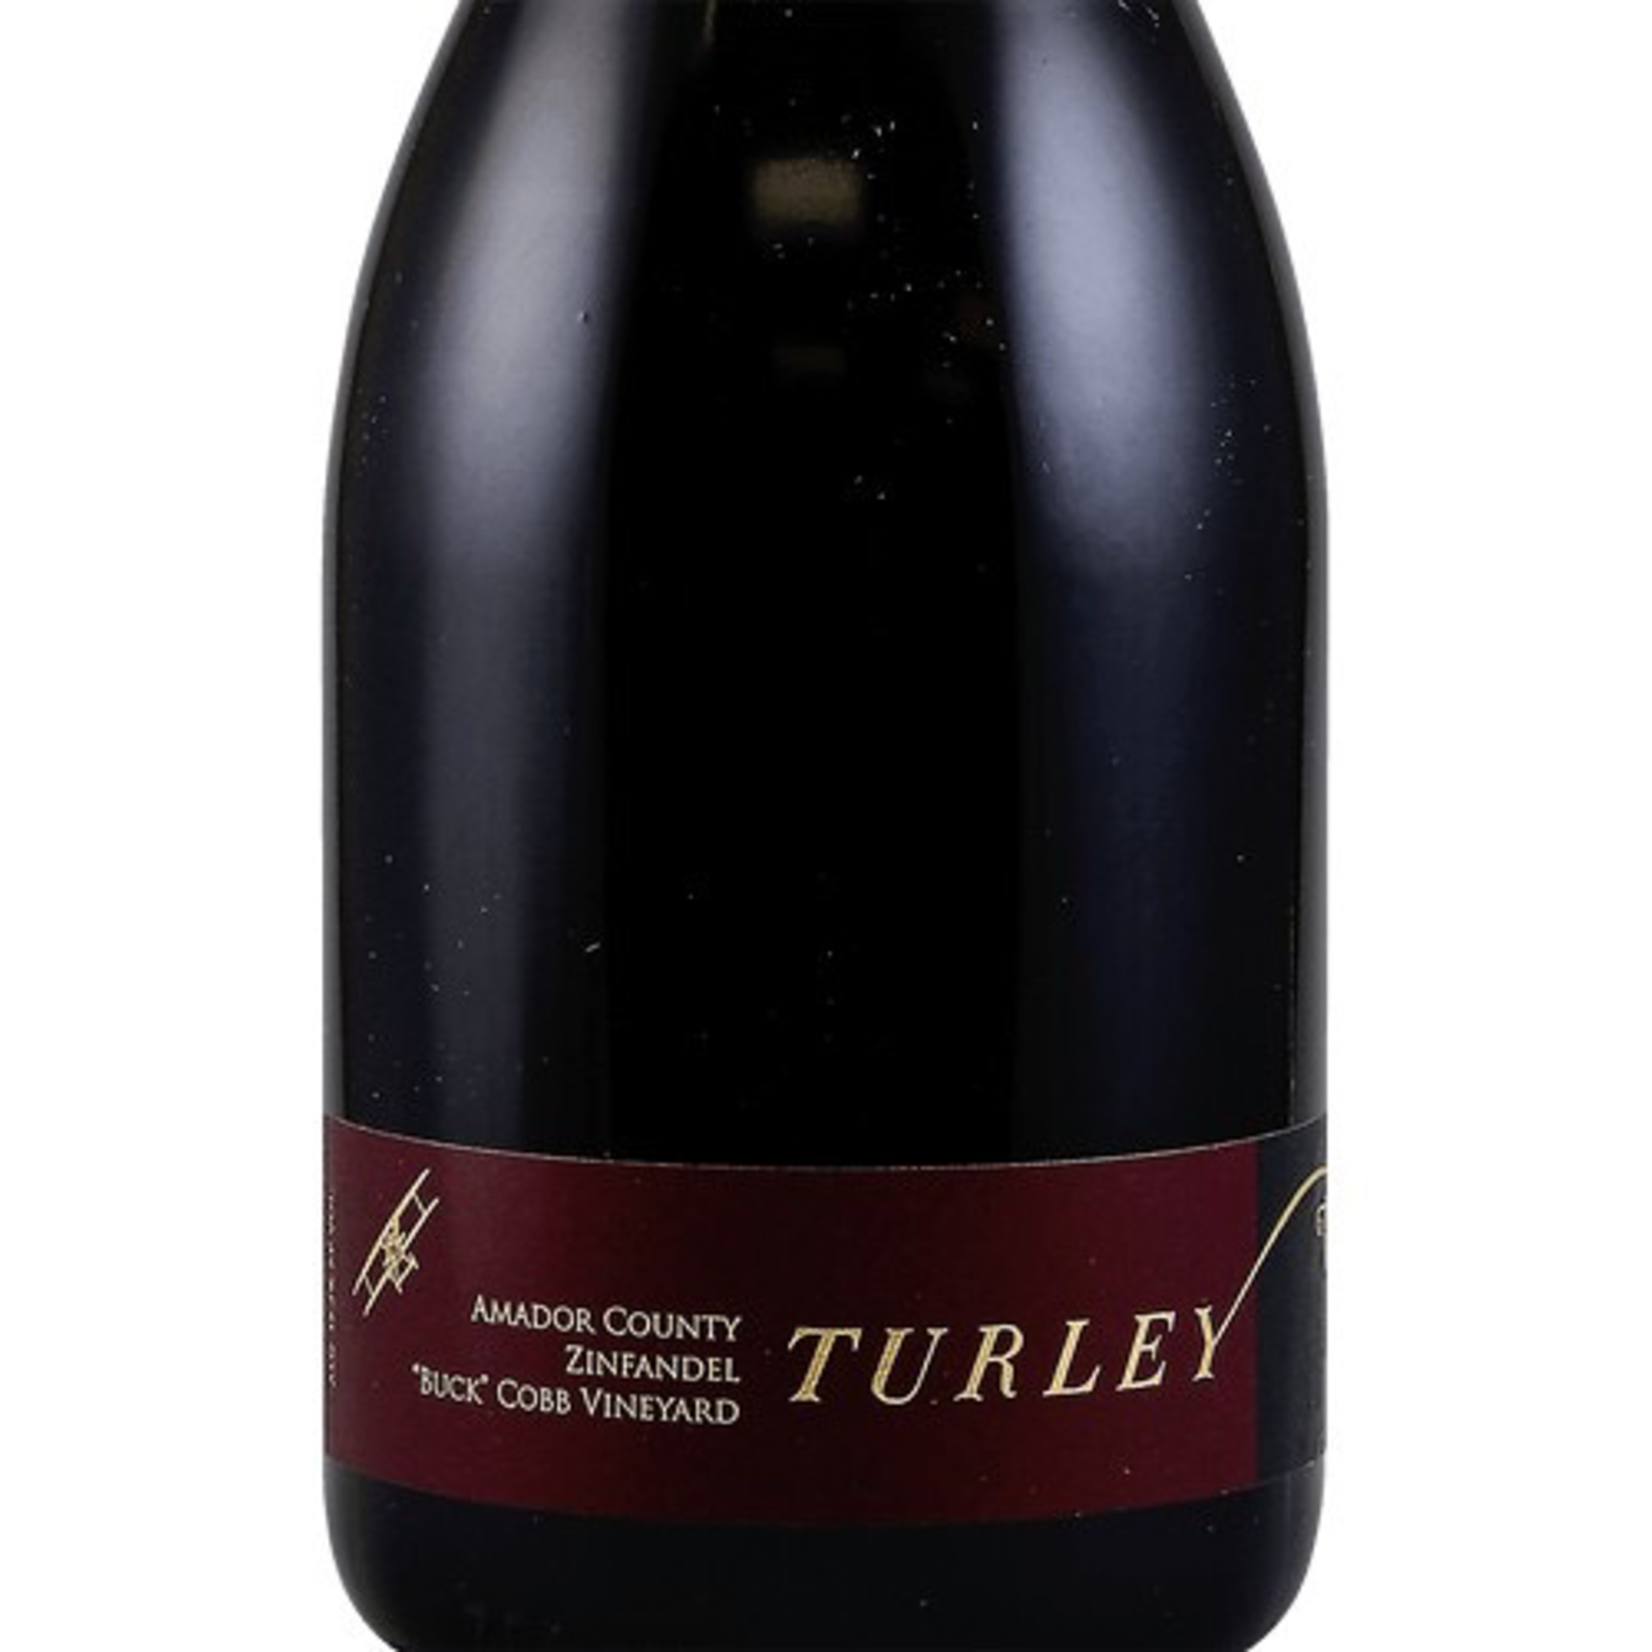 Wine Turley Zinfandel Buck Cobb Vineyard Amador County 2016